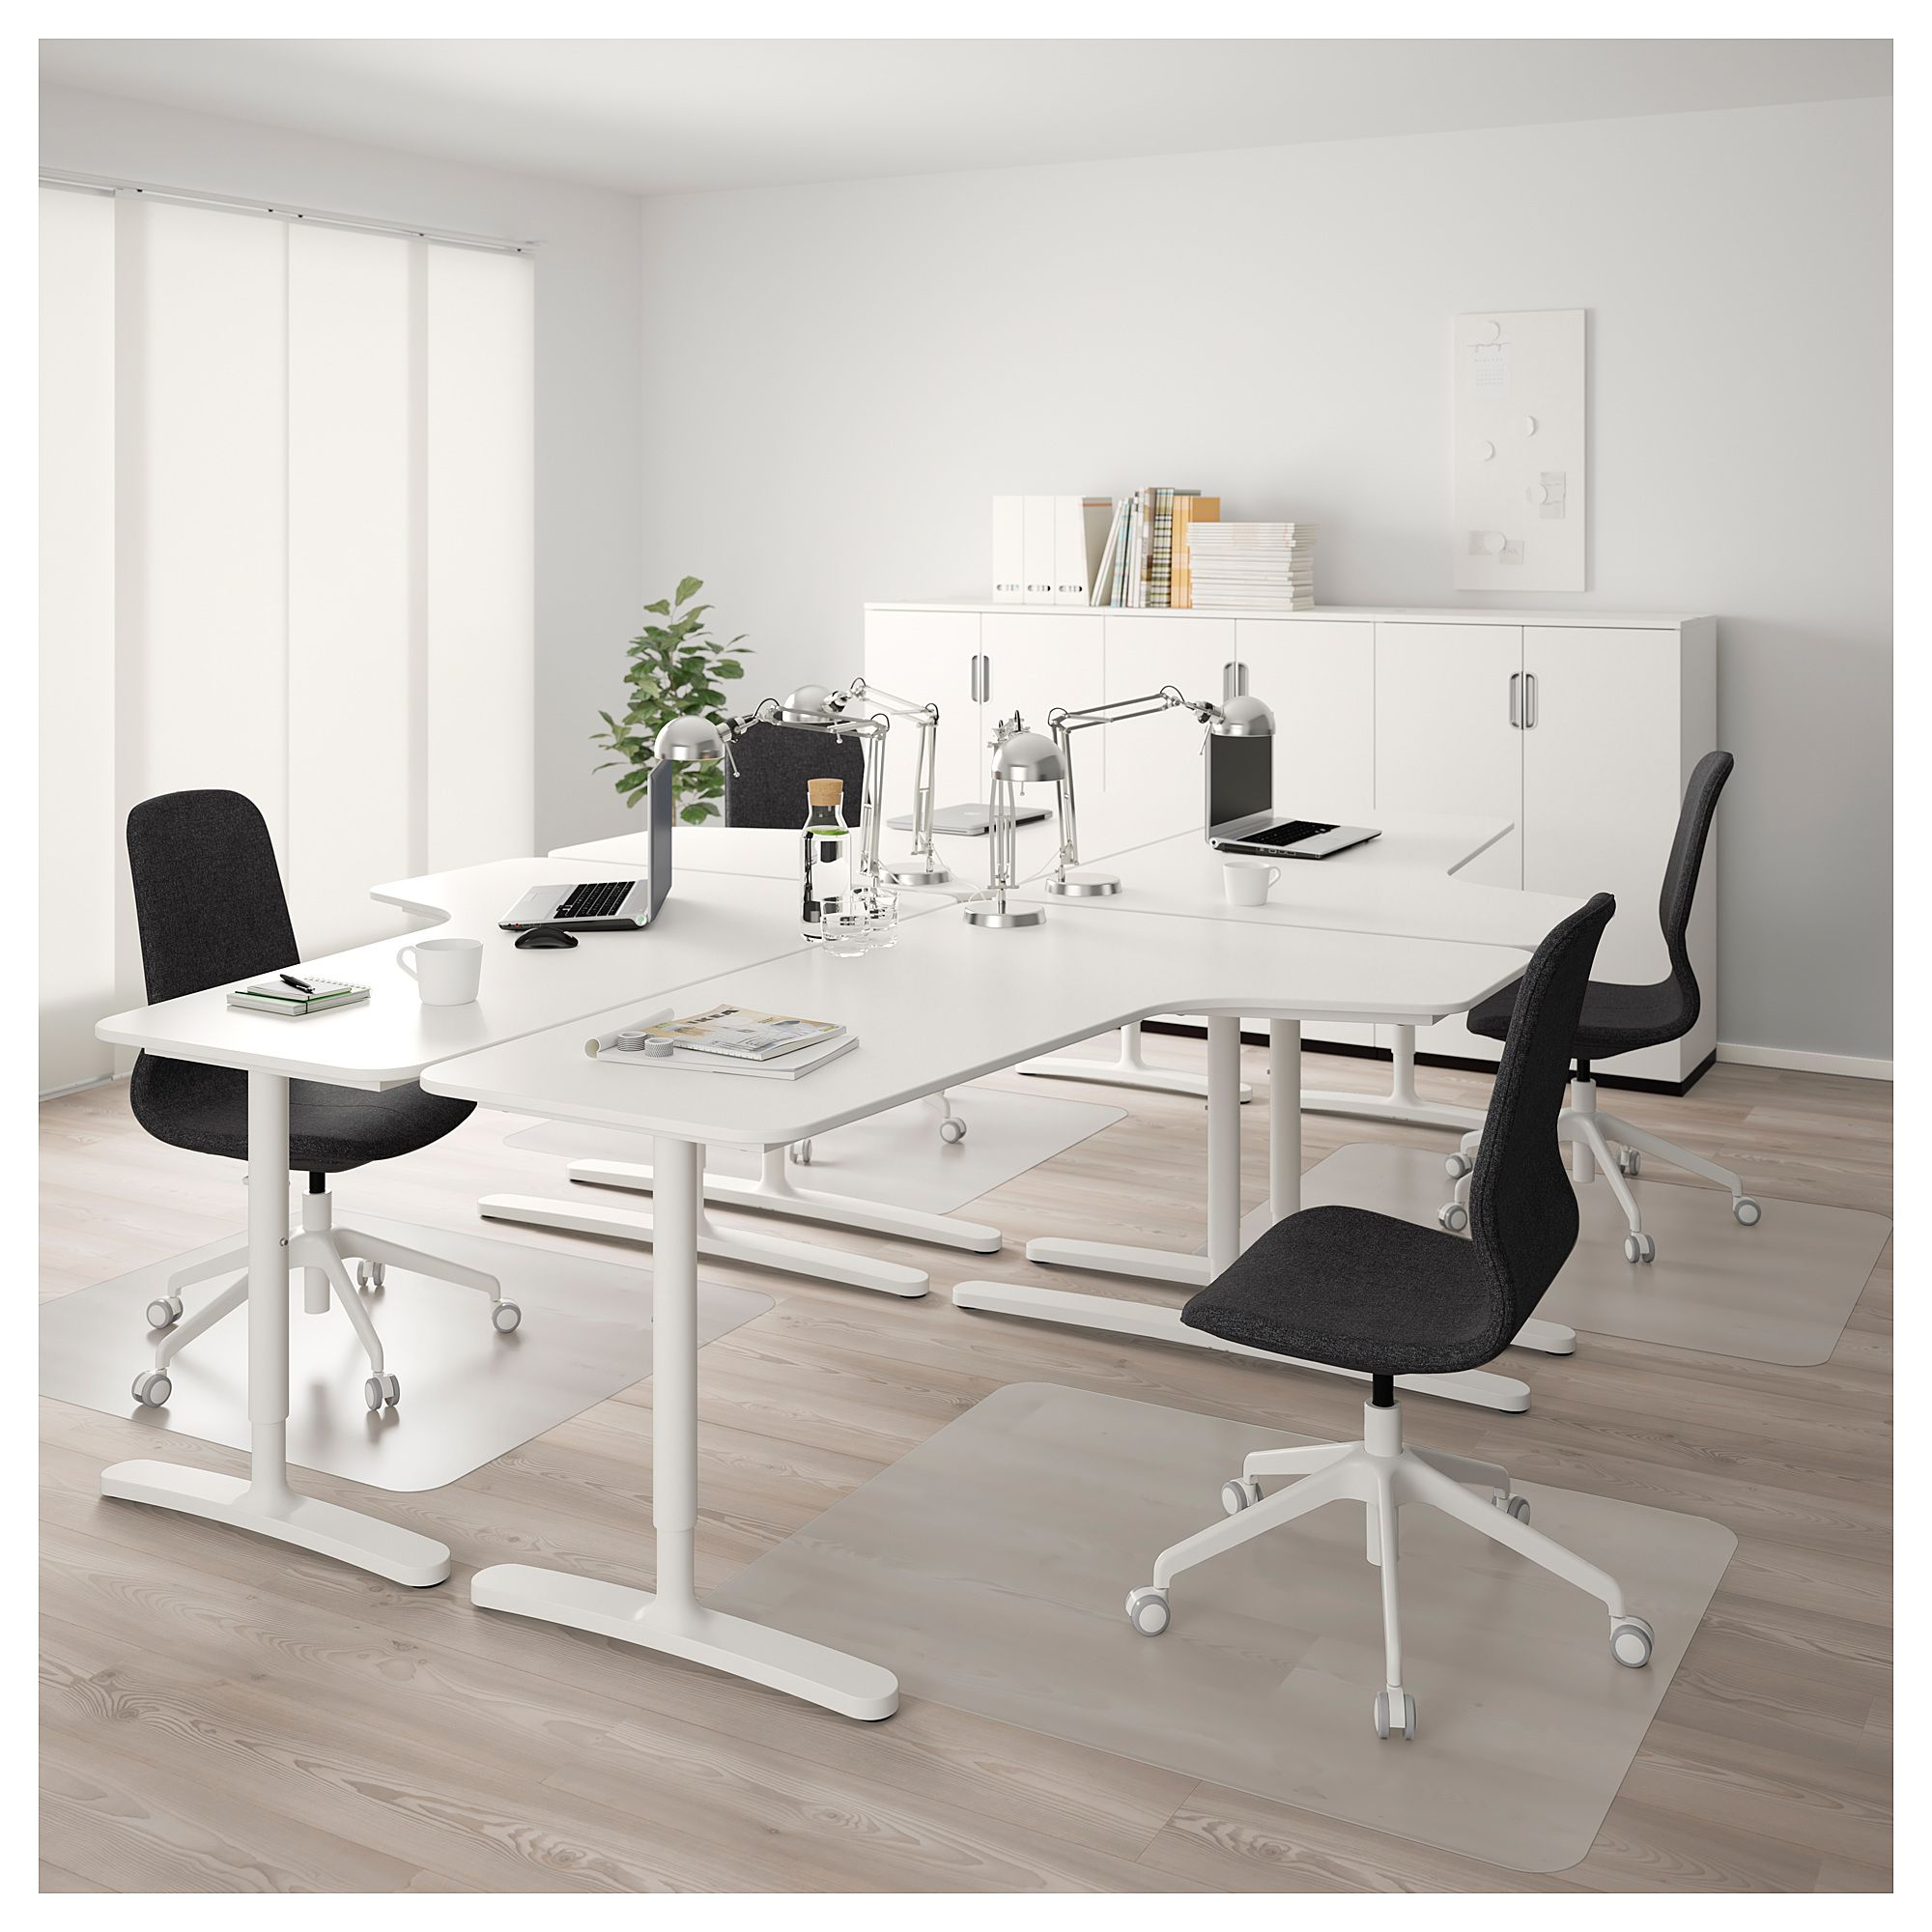 Bekant Corner Desk Right White Ikea Home Office Design Ikea Bekant Ikea Bekant Desk